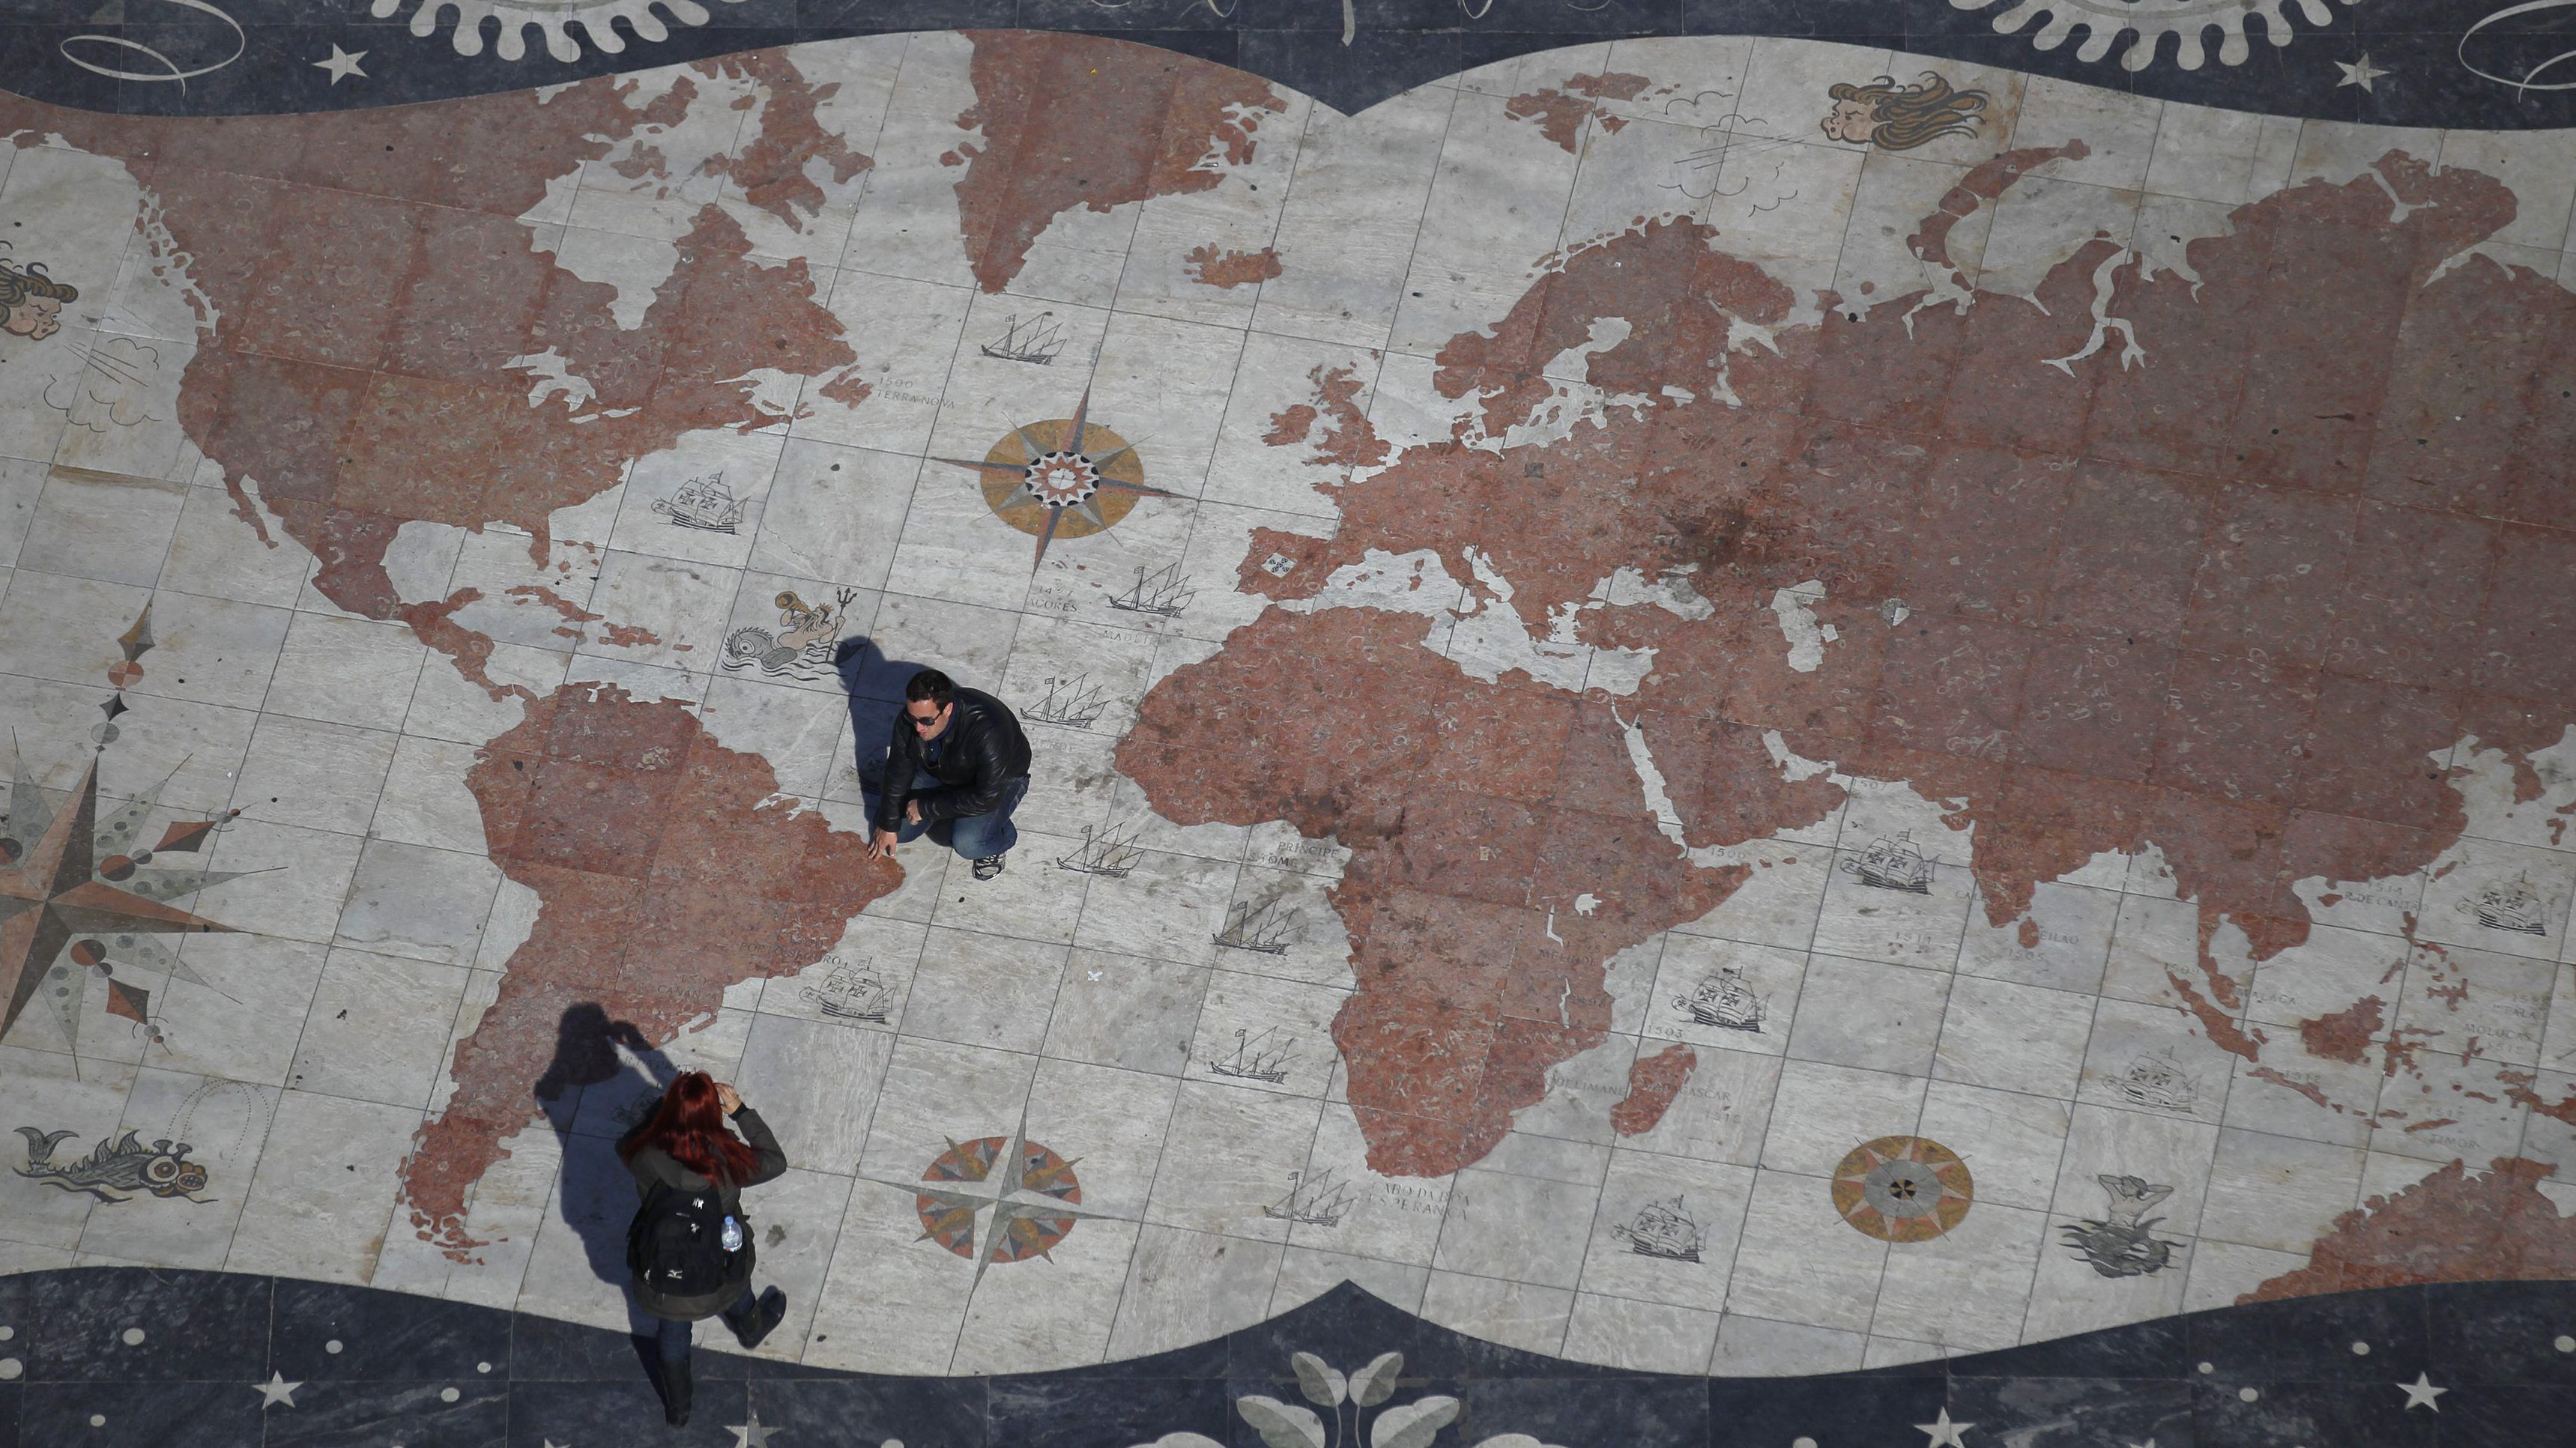 A man is photographed on a square decorated with a giant world map, with marks showing former Portuguese colonies, in Lisbon March 6, 2012. Portugal flourished as a global power with explorers like Vasco da Gama and Pedro Alvares Cabral building an empire which lasted for 600 years. Now a new wave of adventurers is once again seeking work, and hopefully fortune, elsewhere. Emigrating is fast becoming a preferred option for many seeking a decent living as their bailed-out economy suffers under debt, low growth and poor competitiveness. Portugal's booming ex-colonies in Africa and Brazil are a natural choice. Picture taken March 6, 2012. To match Feature PORTUGAL/EMIGRATION